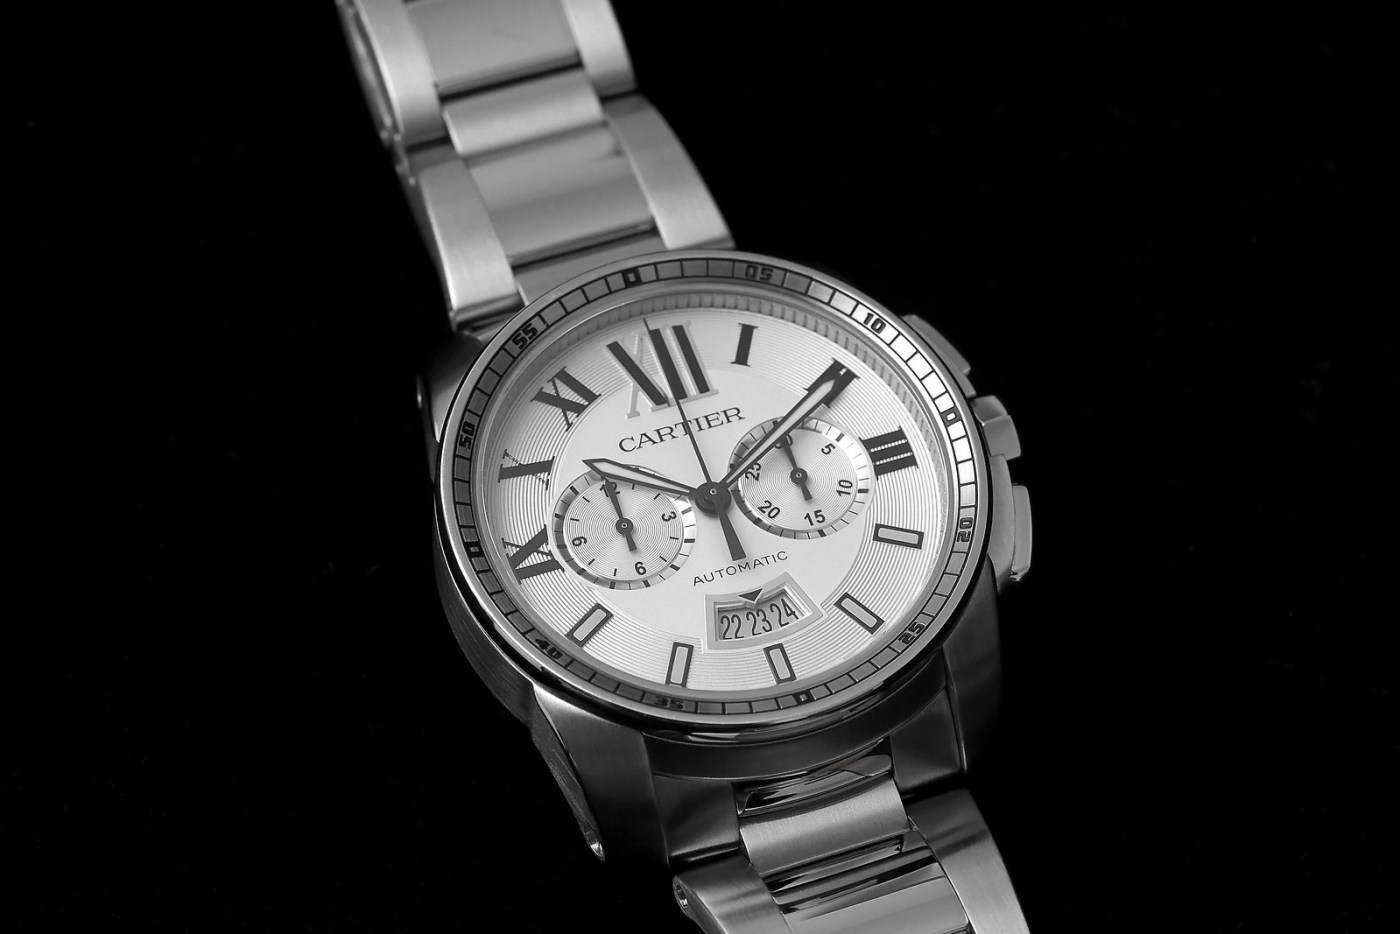 Calibre de Cartier Chronograph